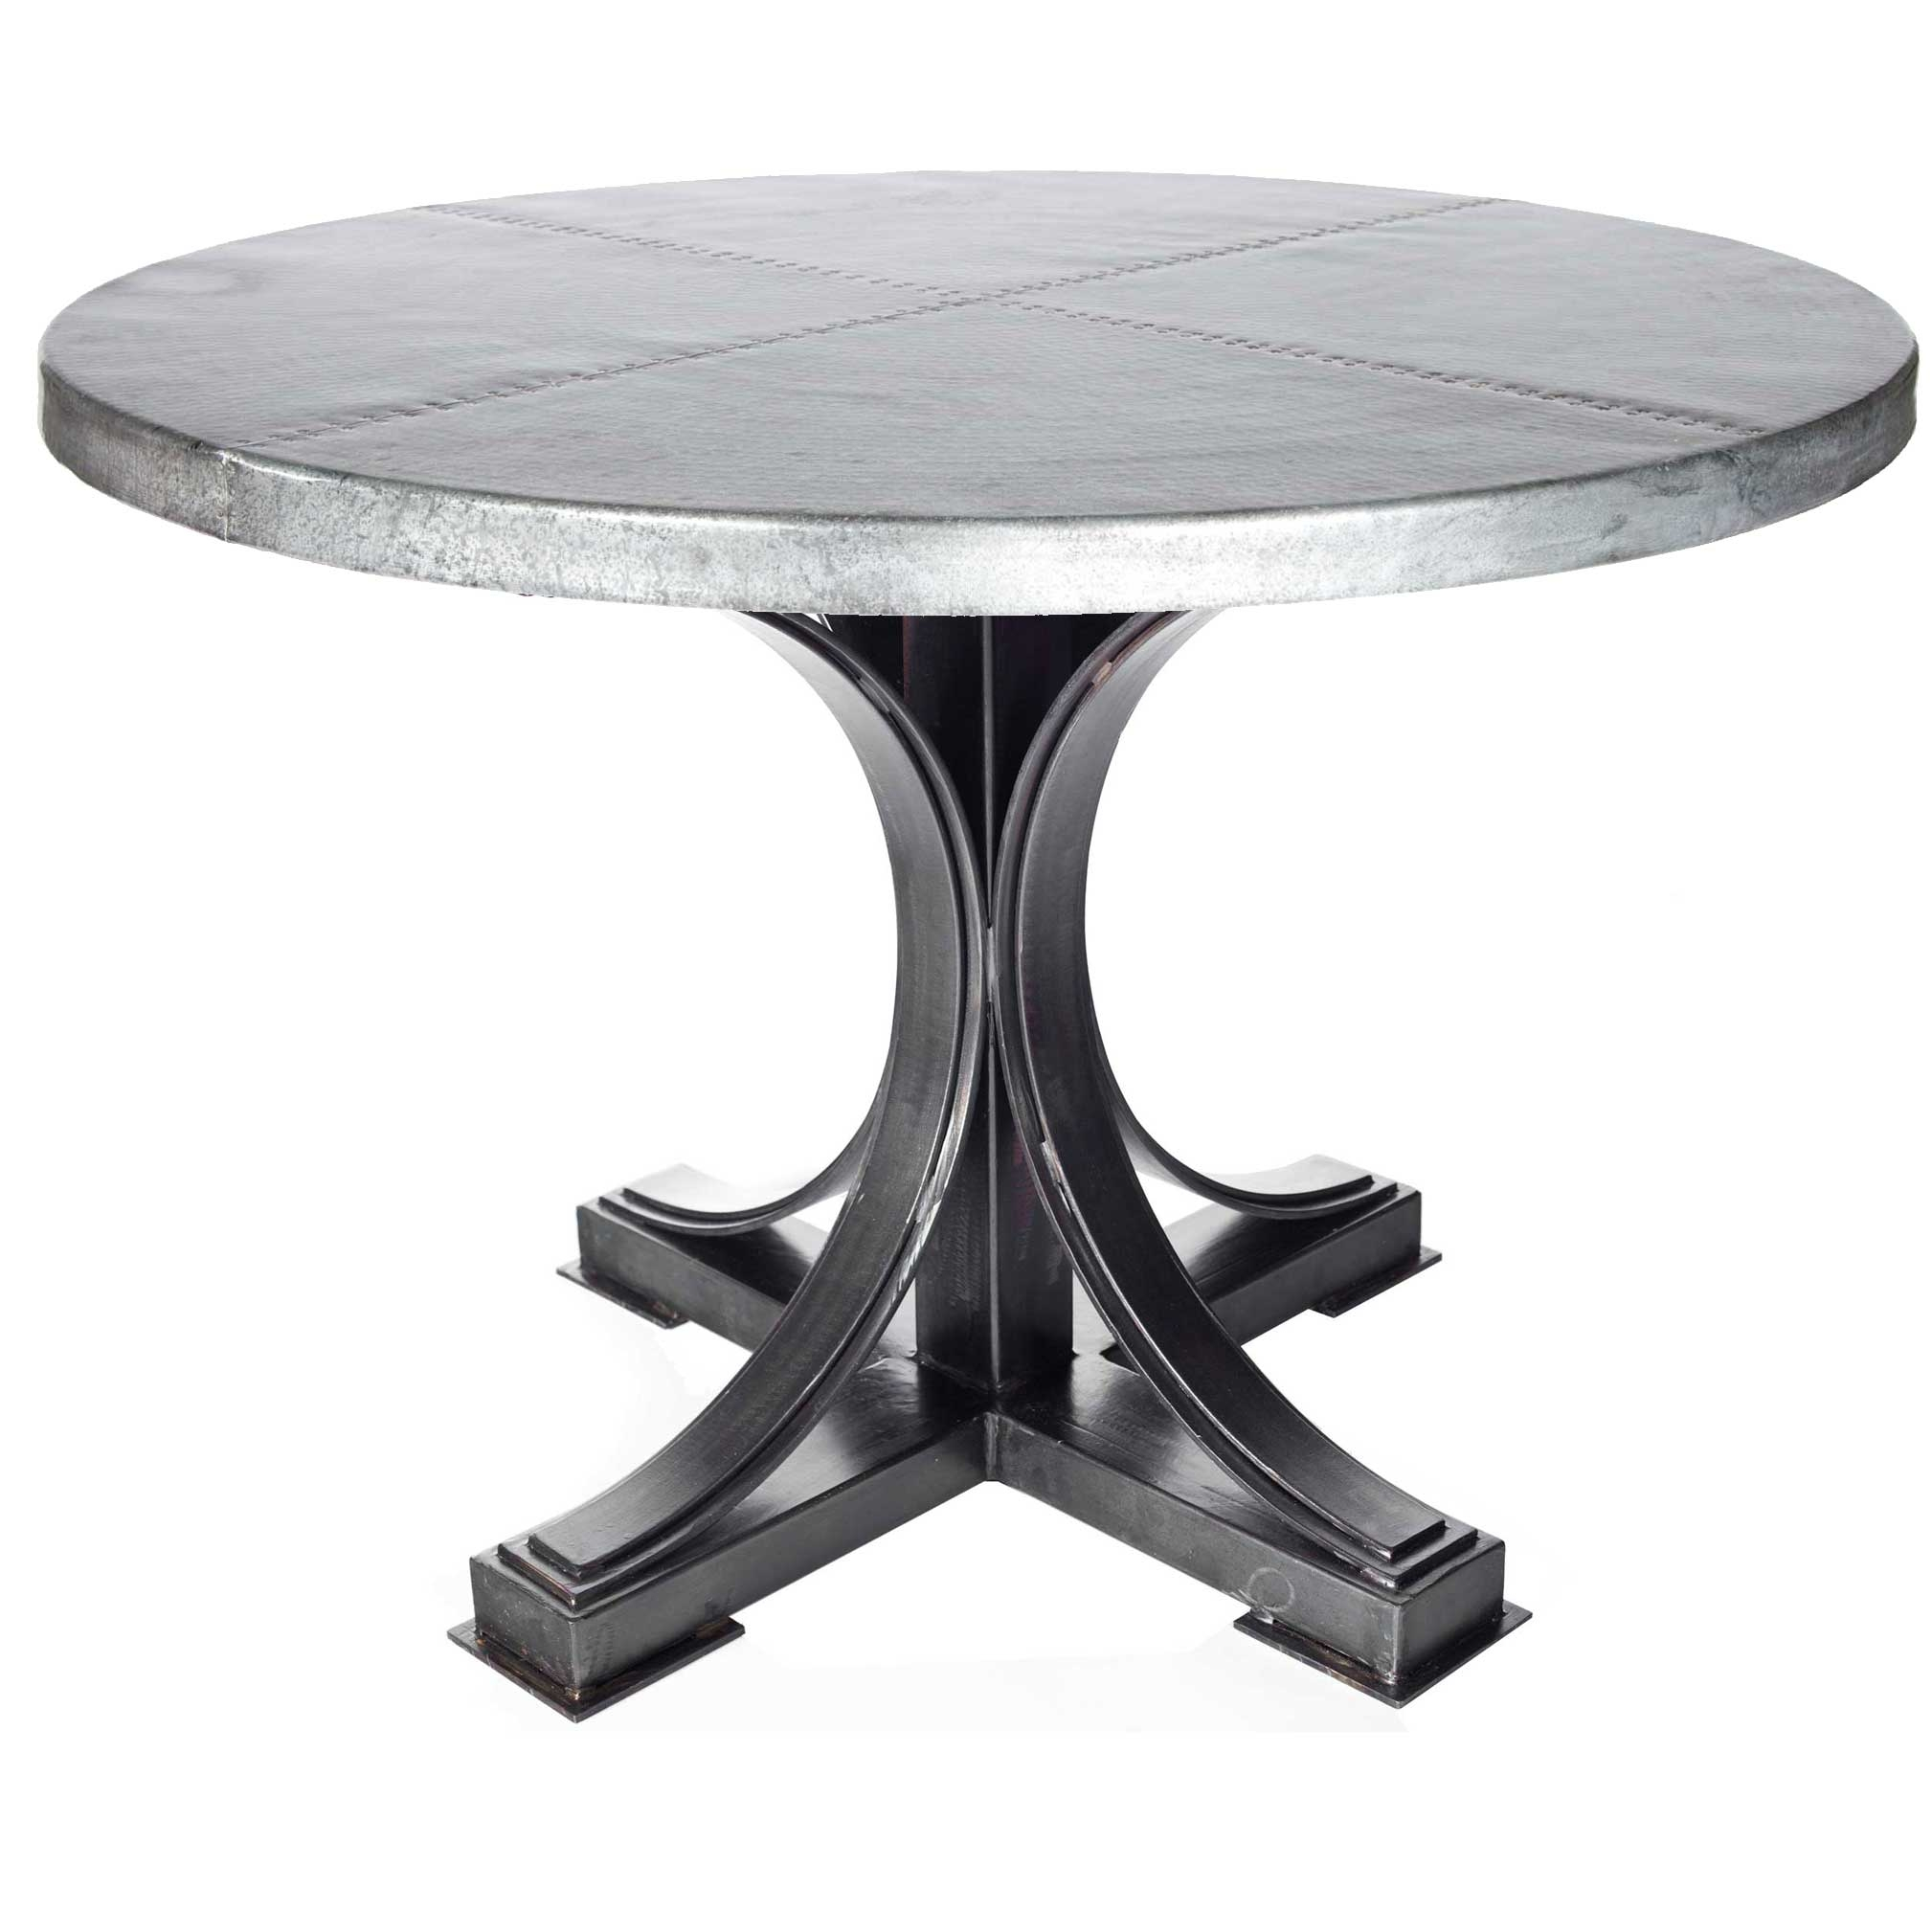 Winston Iron Dining Table with 54in Round Hammered Zinc Top